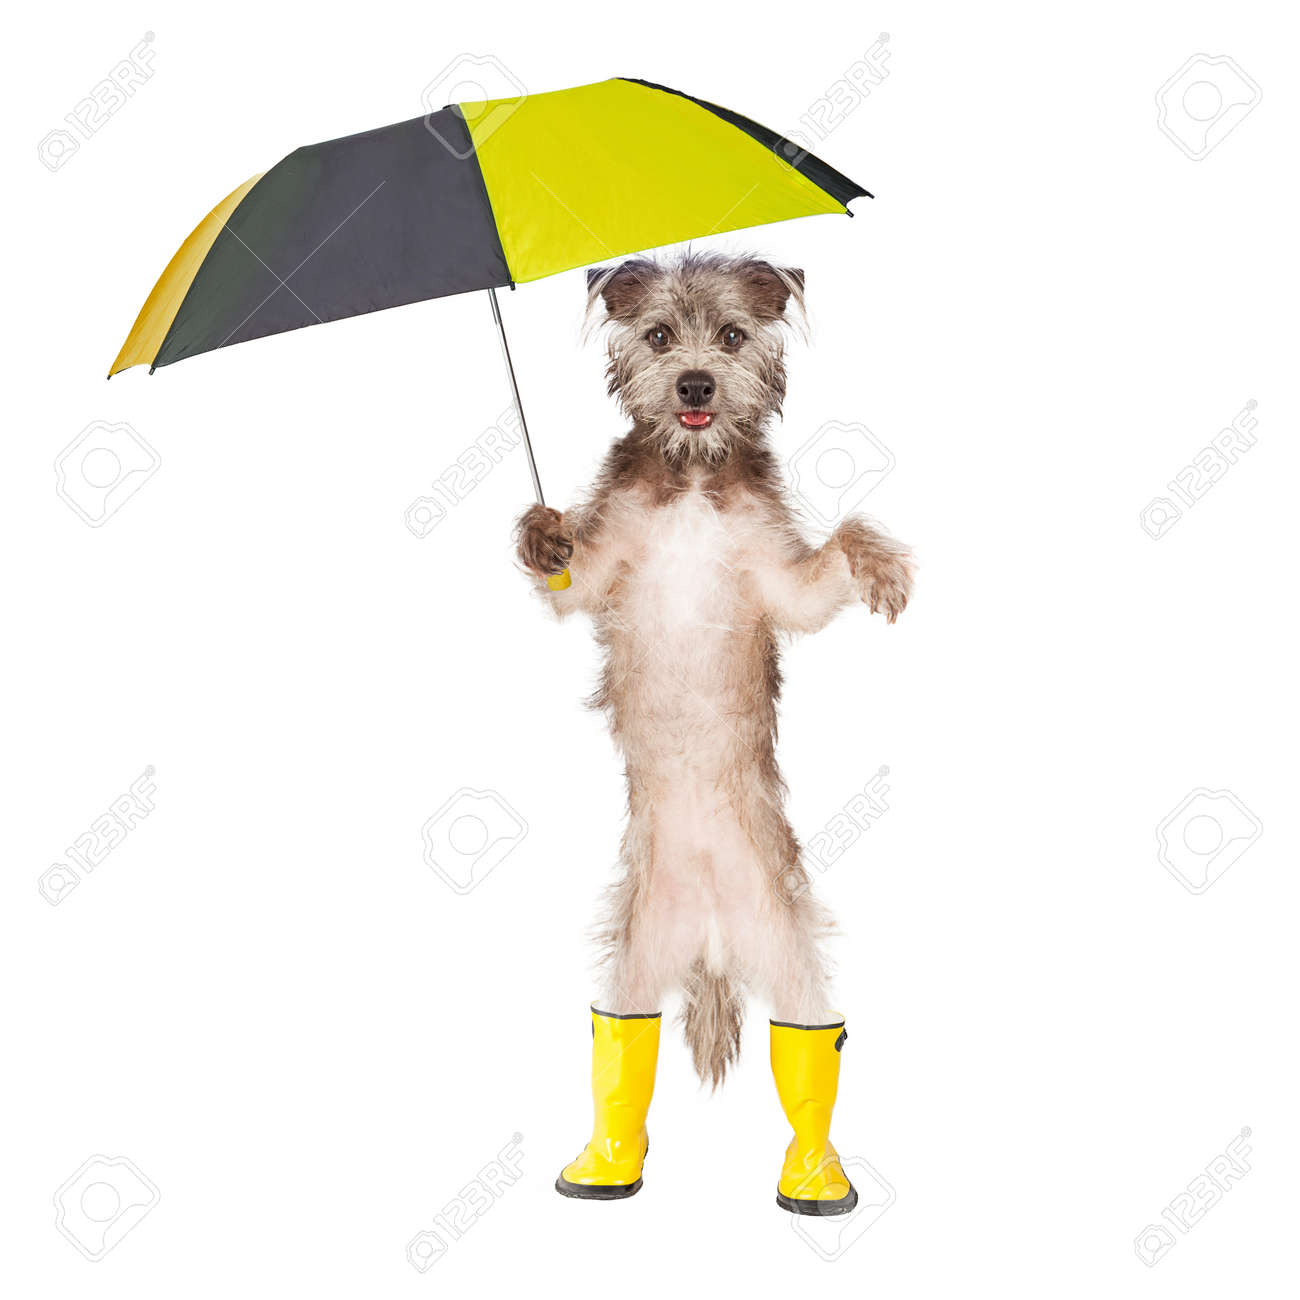 Cute Dog Standing Holding A Rain Umbrella And Wearing Yellow